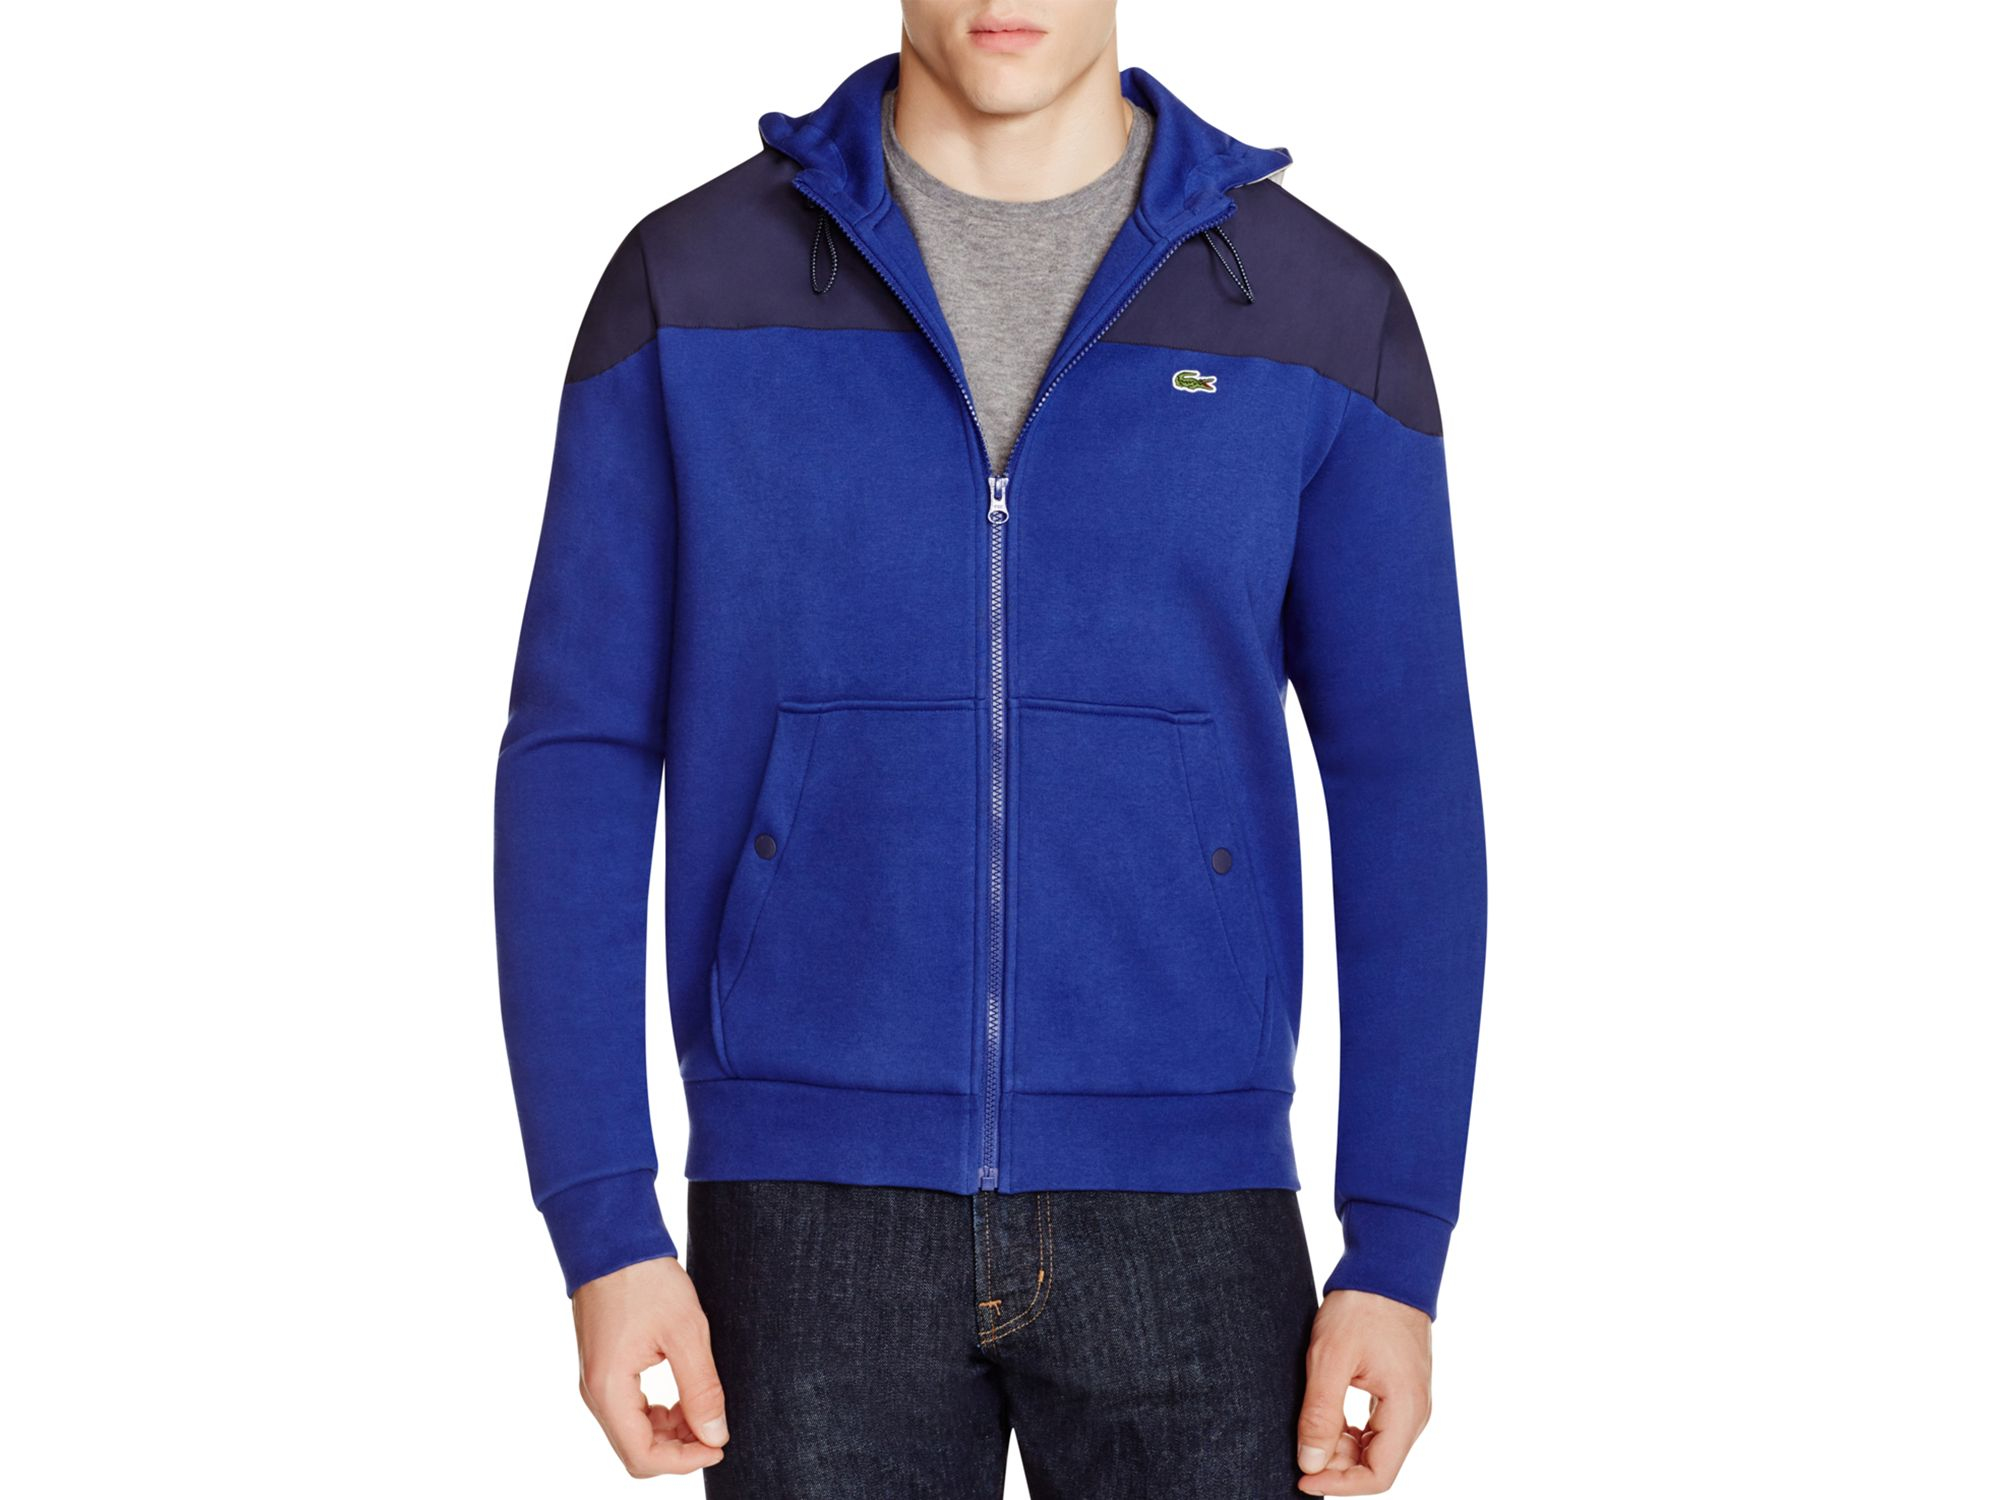 Lacoste zip front fleece hoodie in blue for men lyst for Zip front flannel shirt